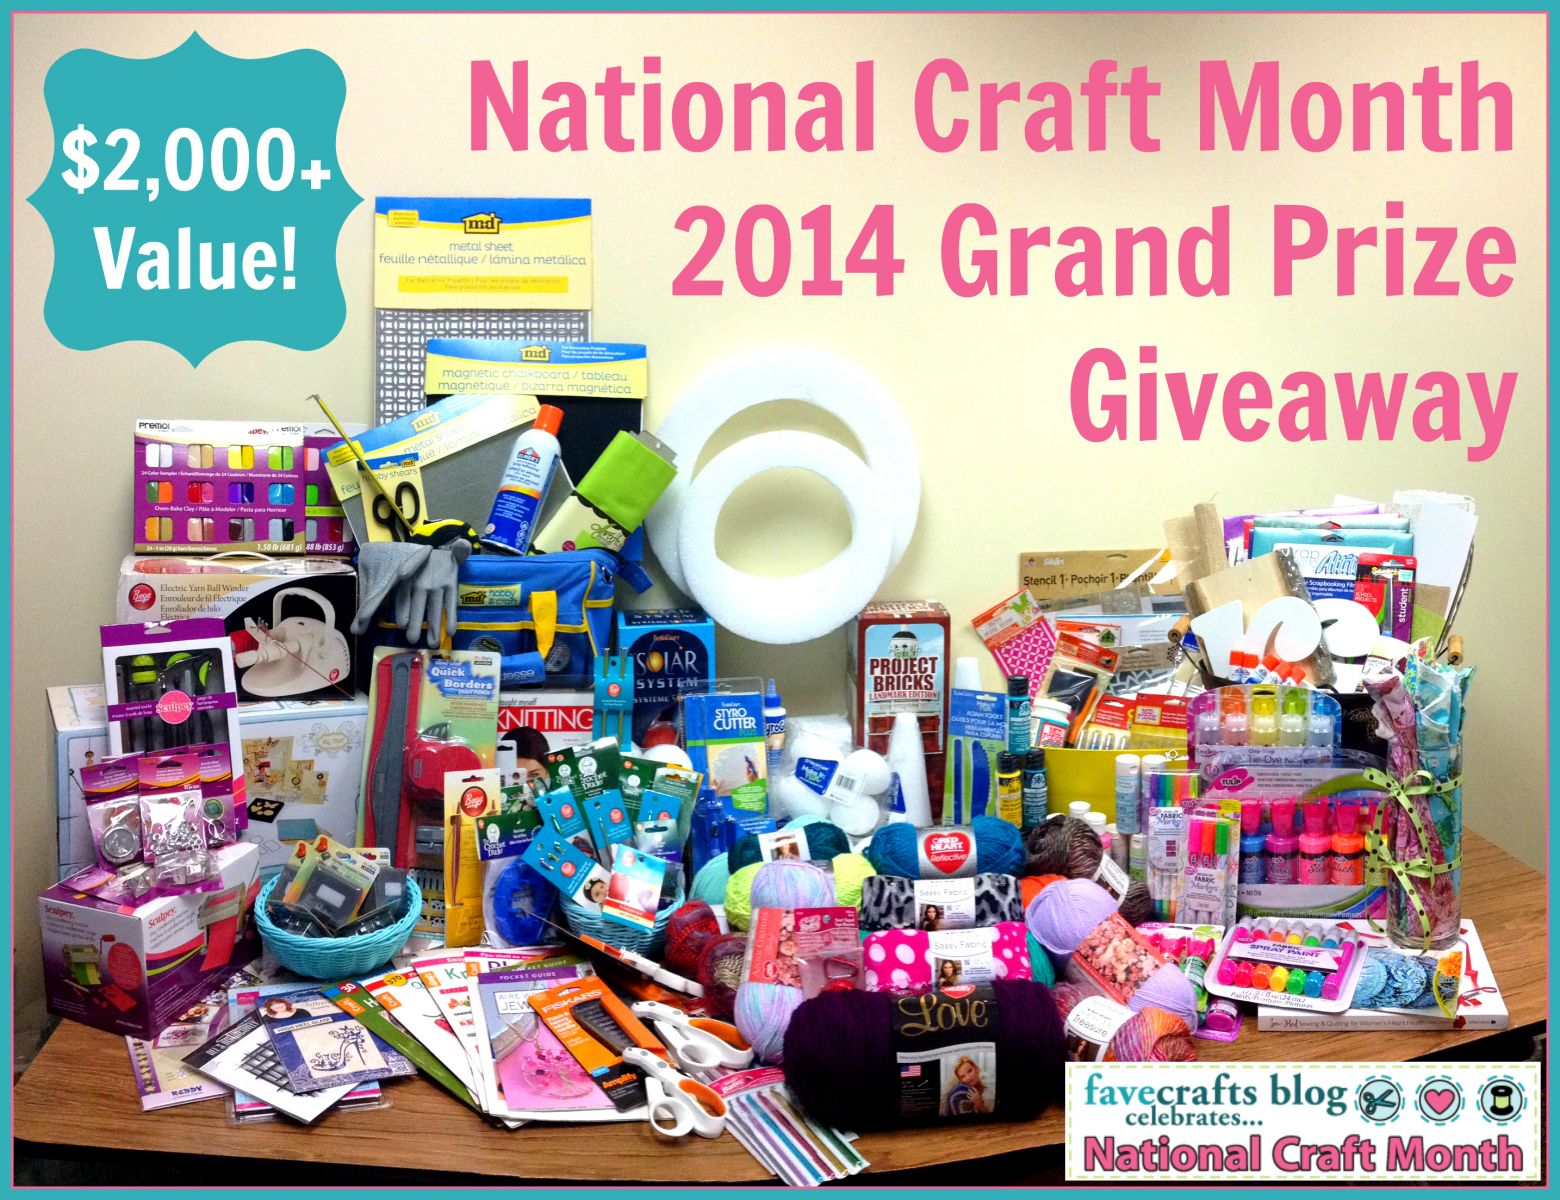 National Craft Month Grand Prize with text 30+ Knit and Crochet Sock Patterns